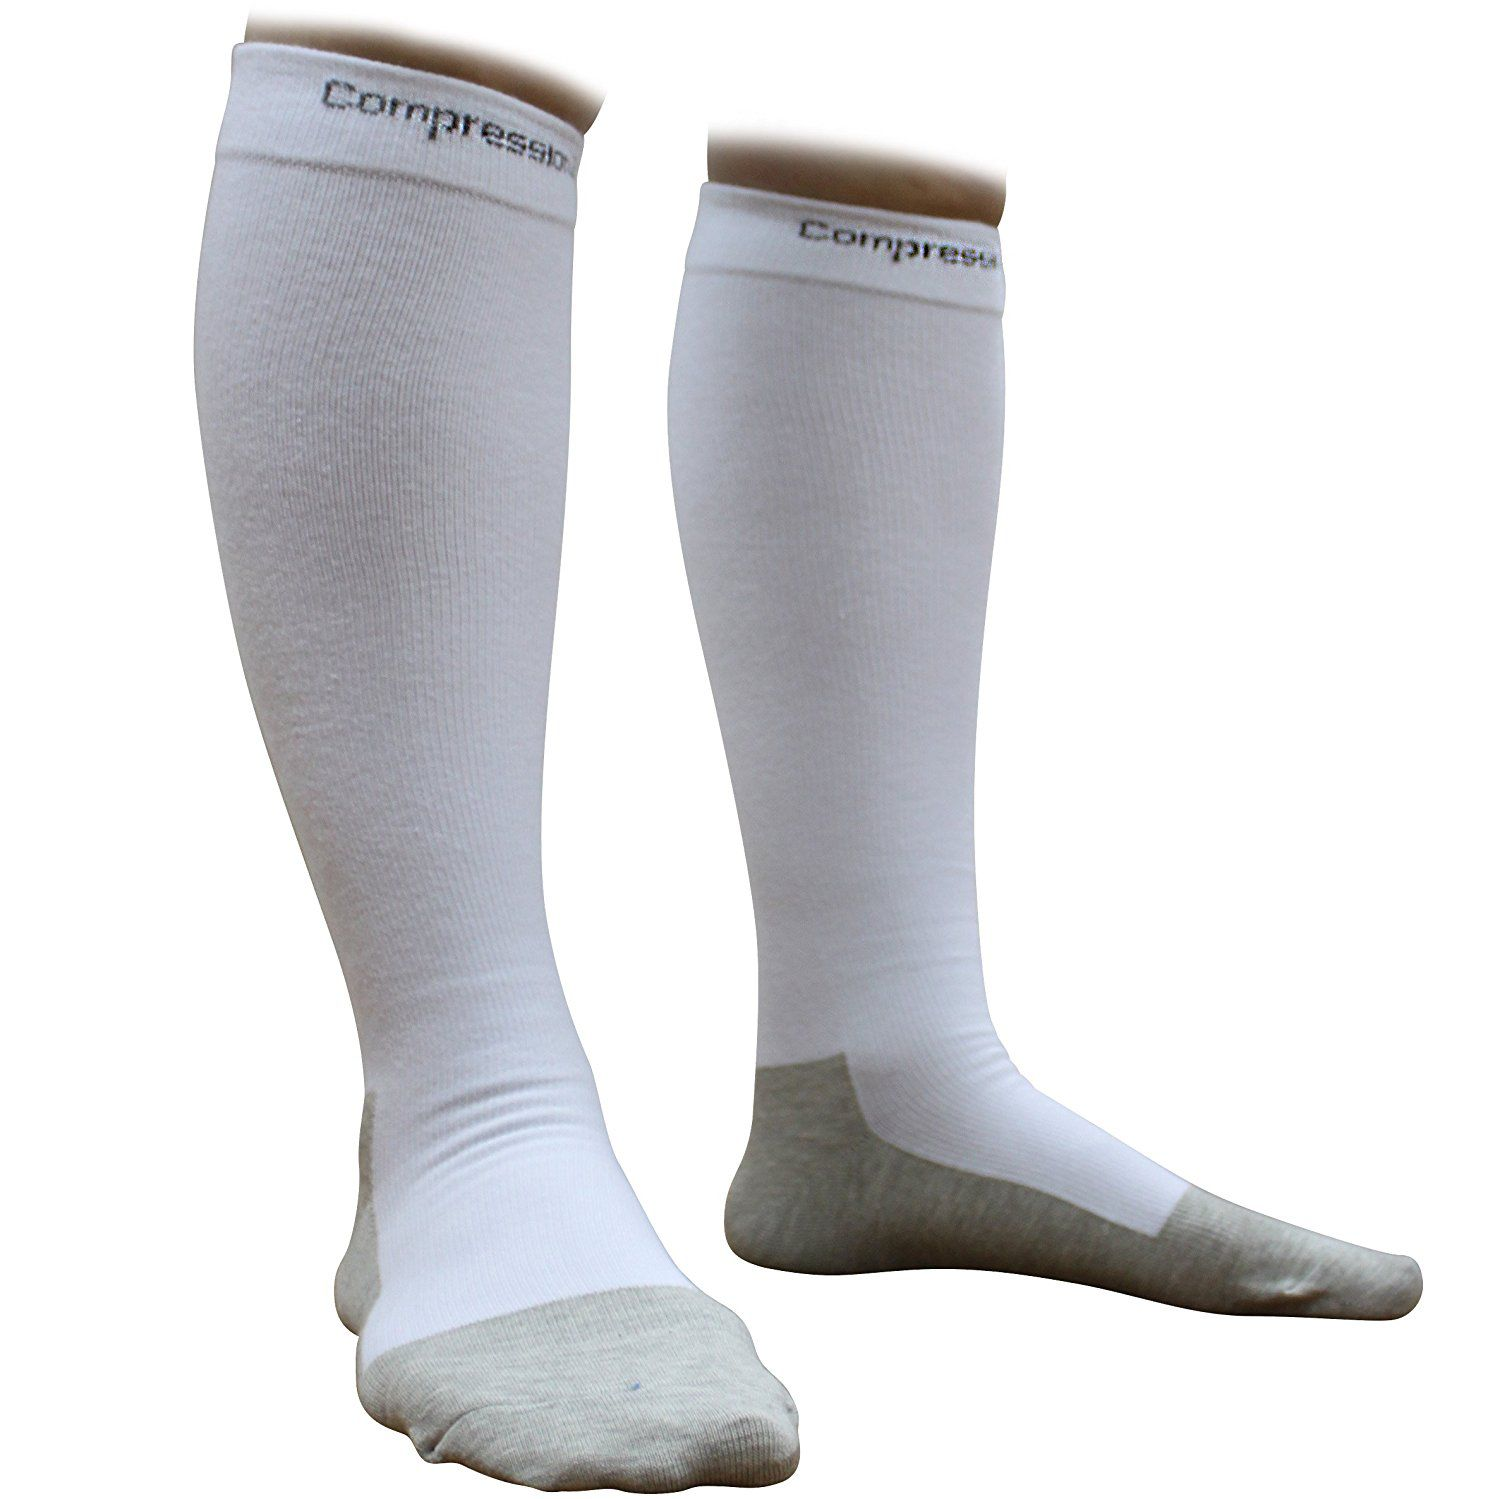 7336fd206b Best for More Compression: Compression Socks 30-40mmHg